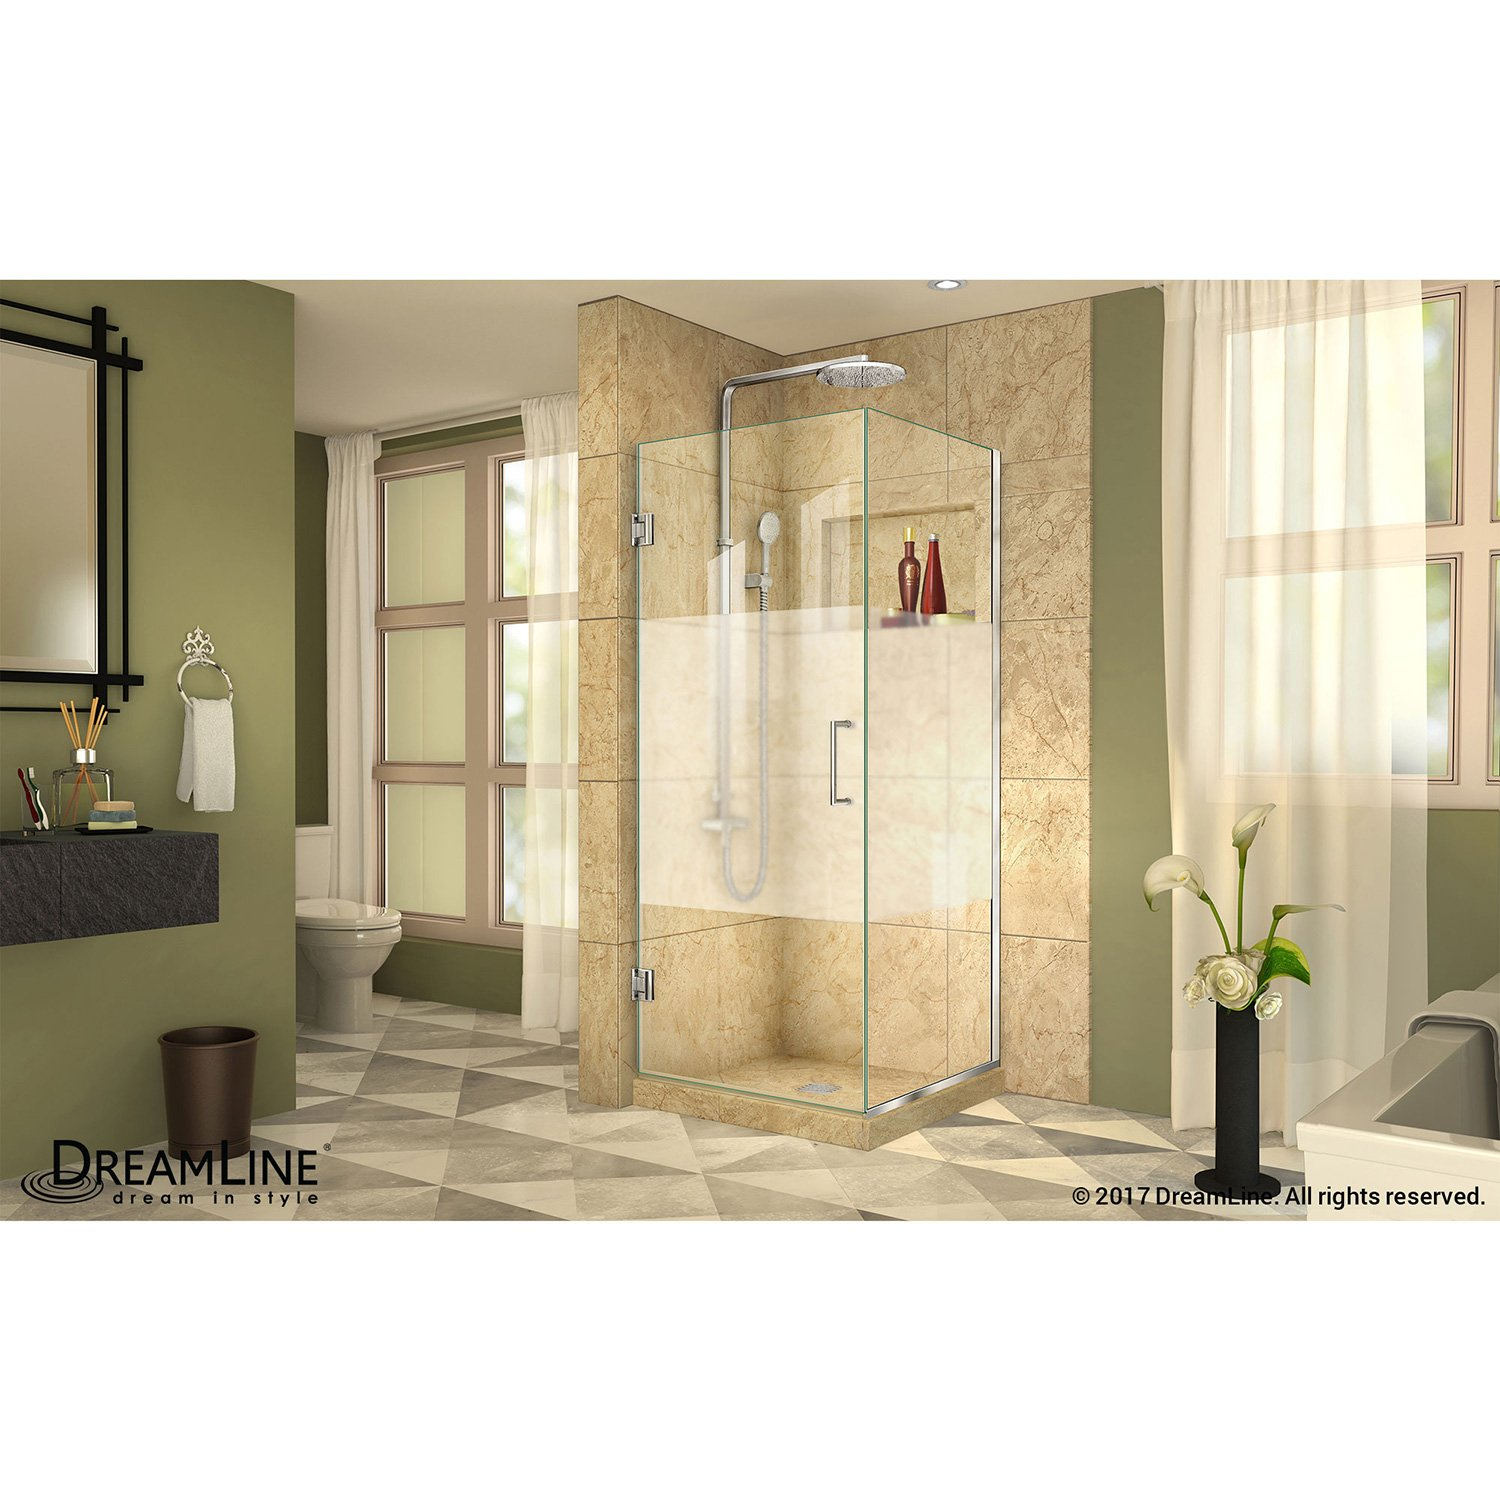 Dreamline Shen 24340340 Hfr 04 Brushed Nickel Hinged Shower Enclosure With Half Frosted Glass Door